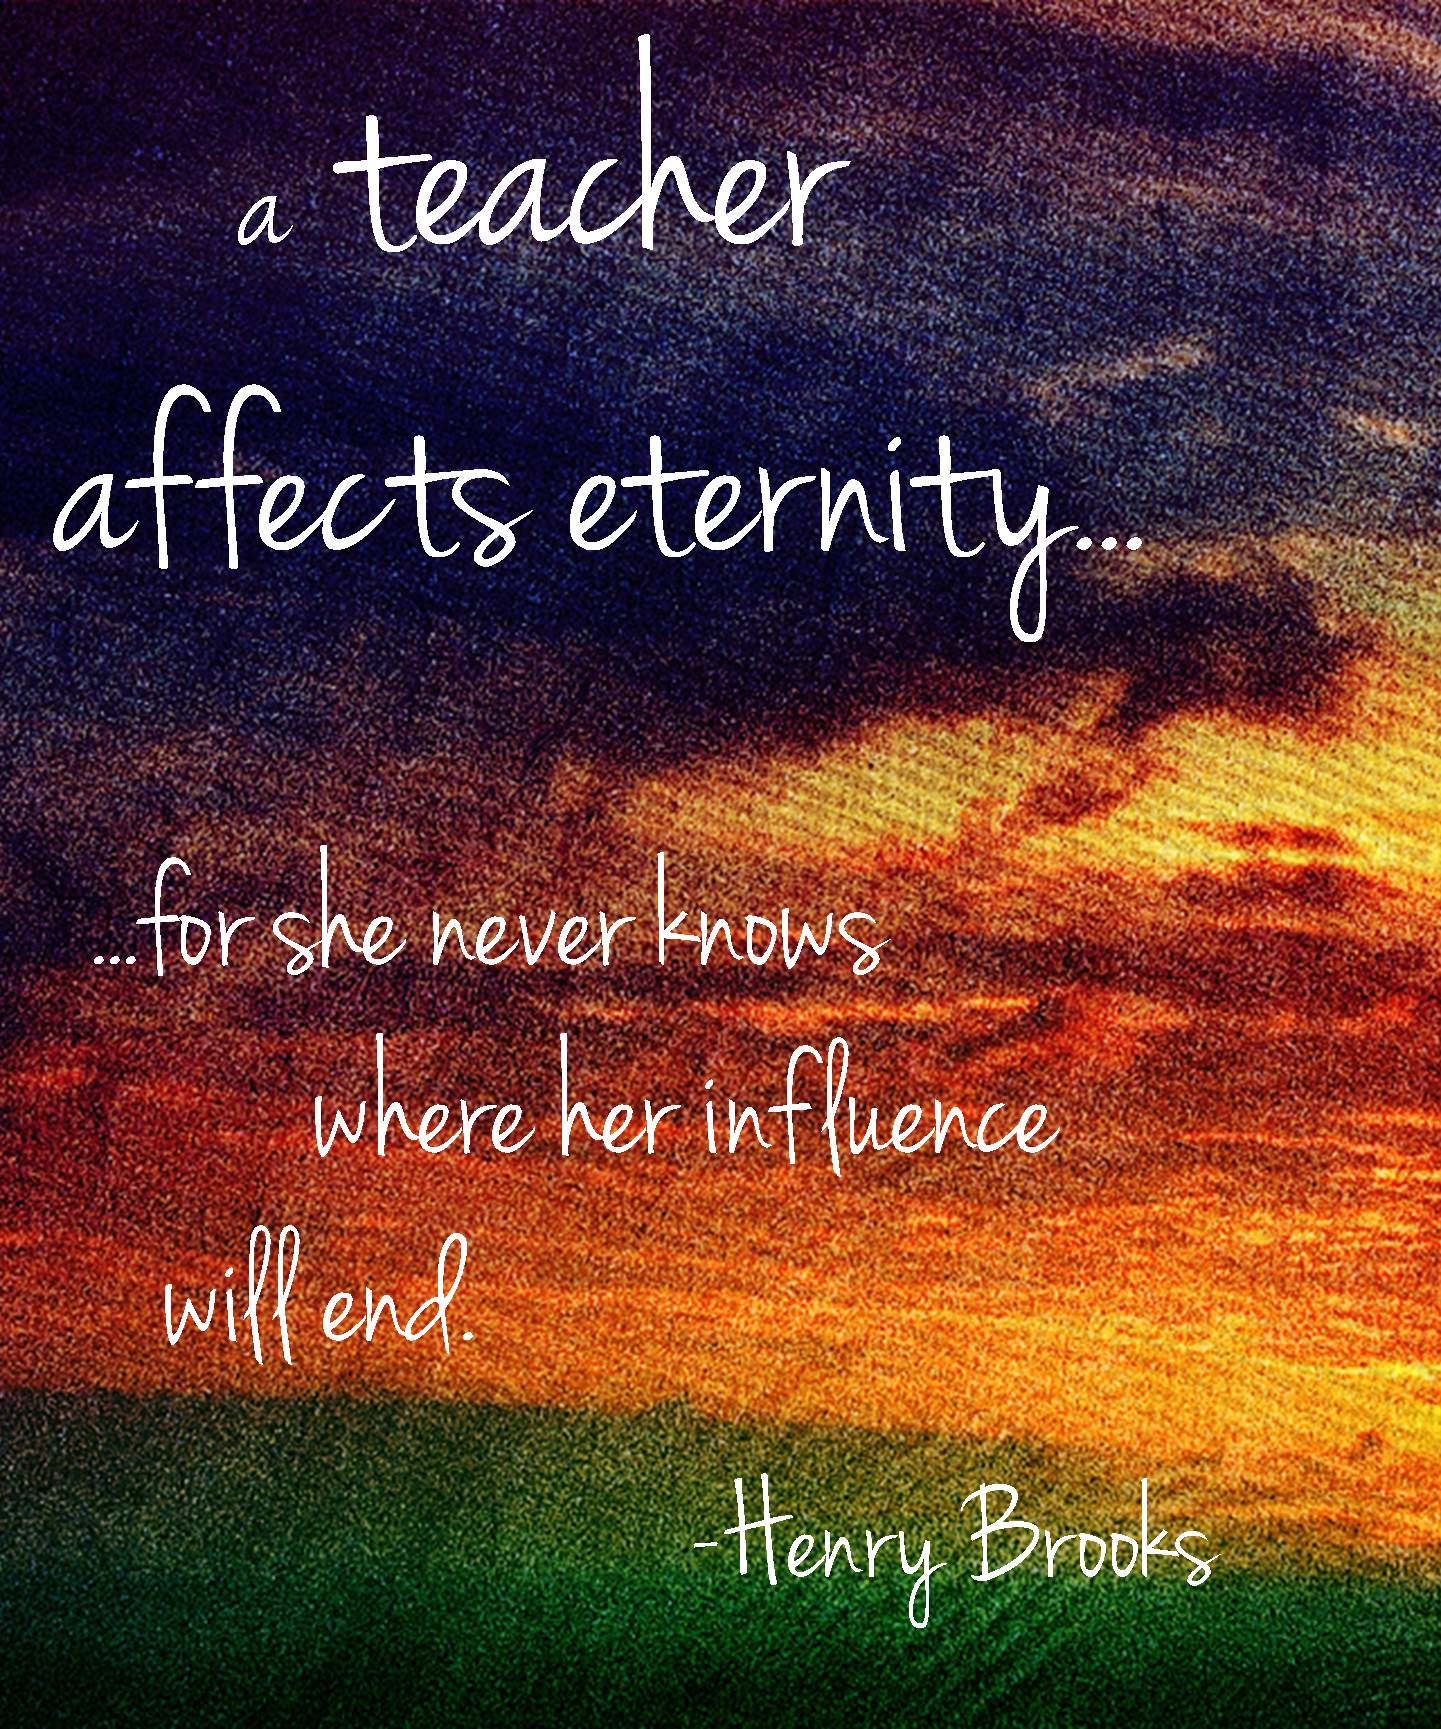 Student Thanking Teacher Quotes: For The Teachers: Thank You